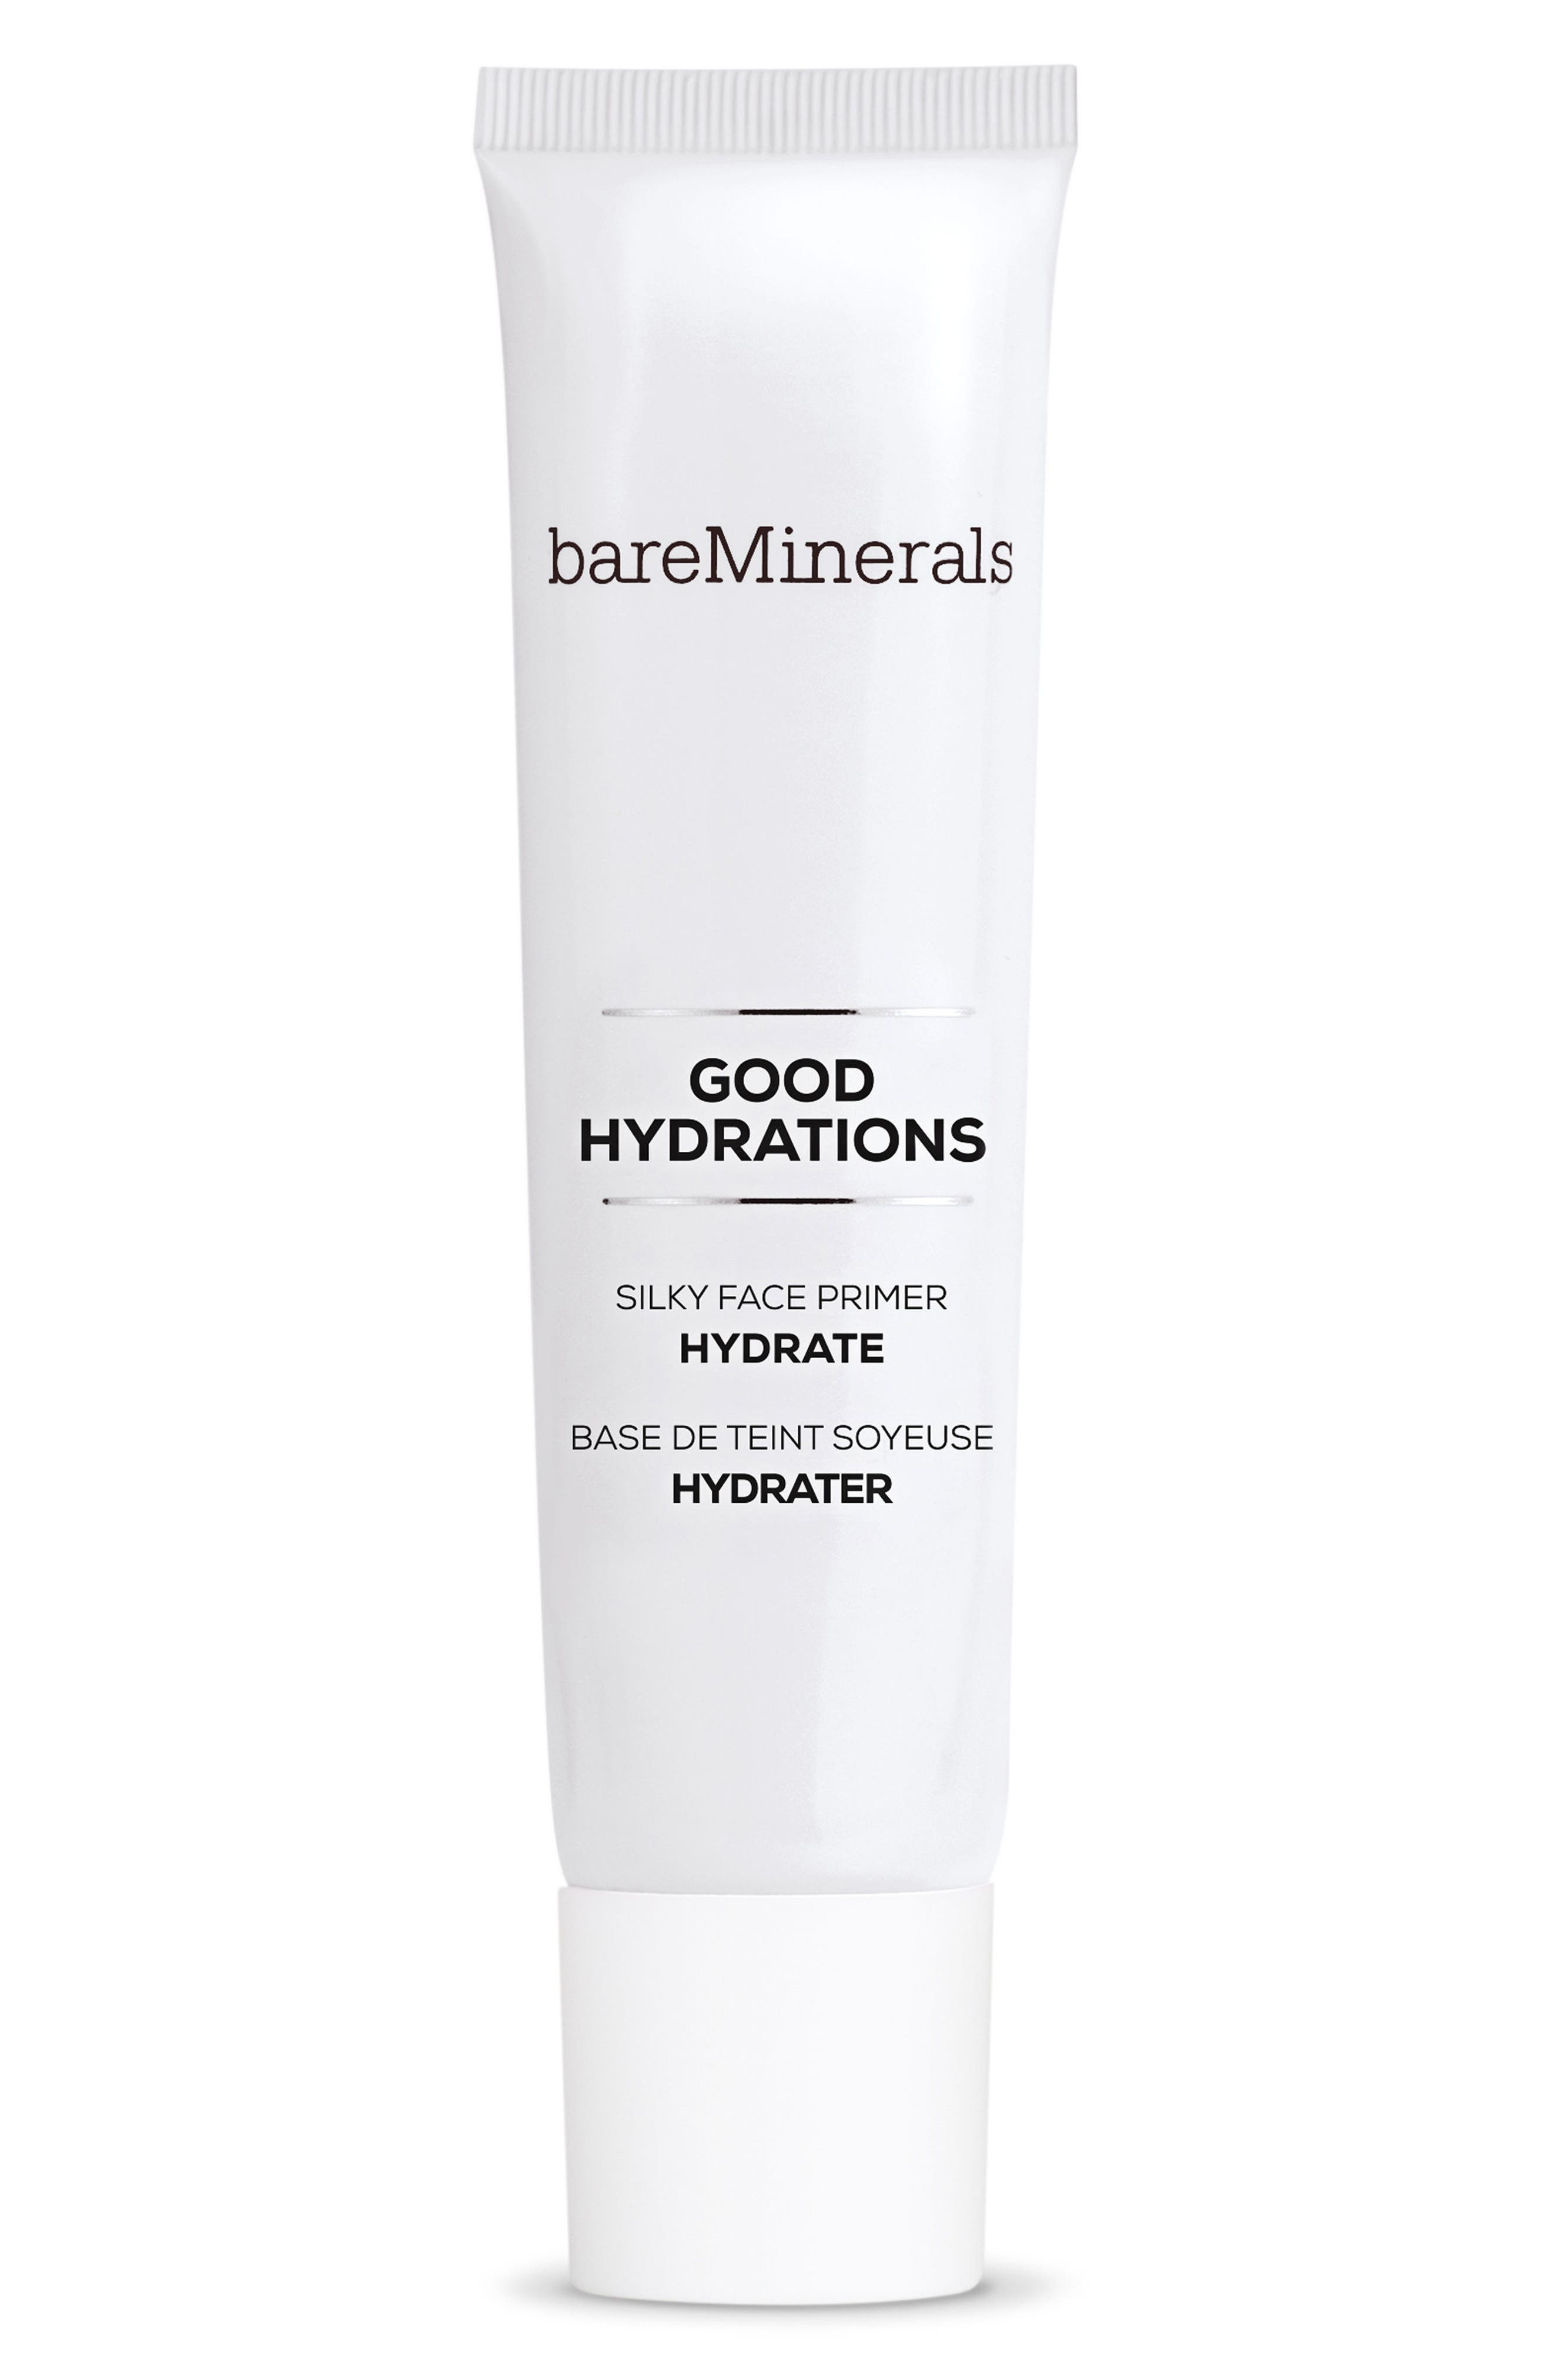 bareMinerals® Good Hydrations Silky Face Primer